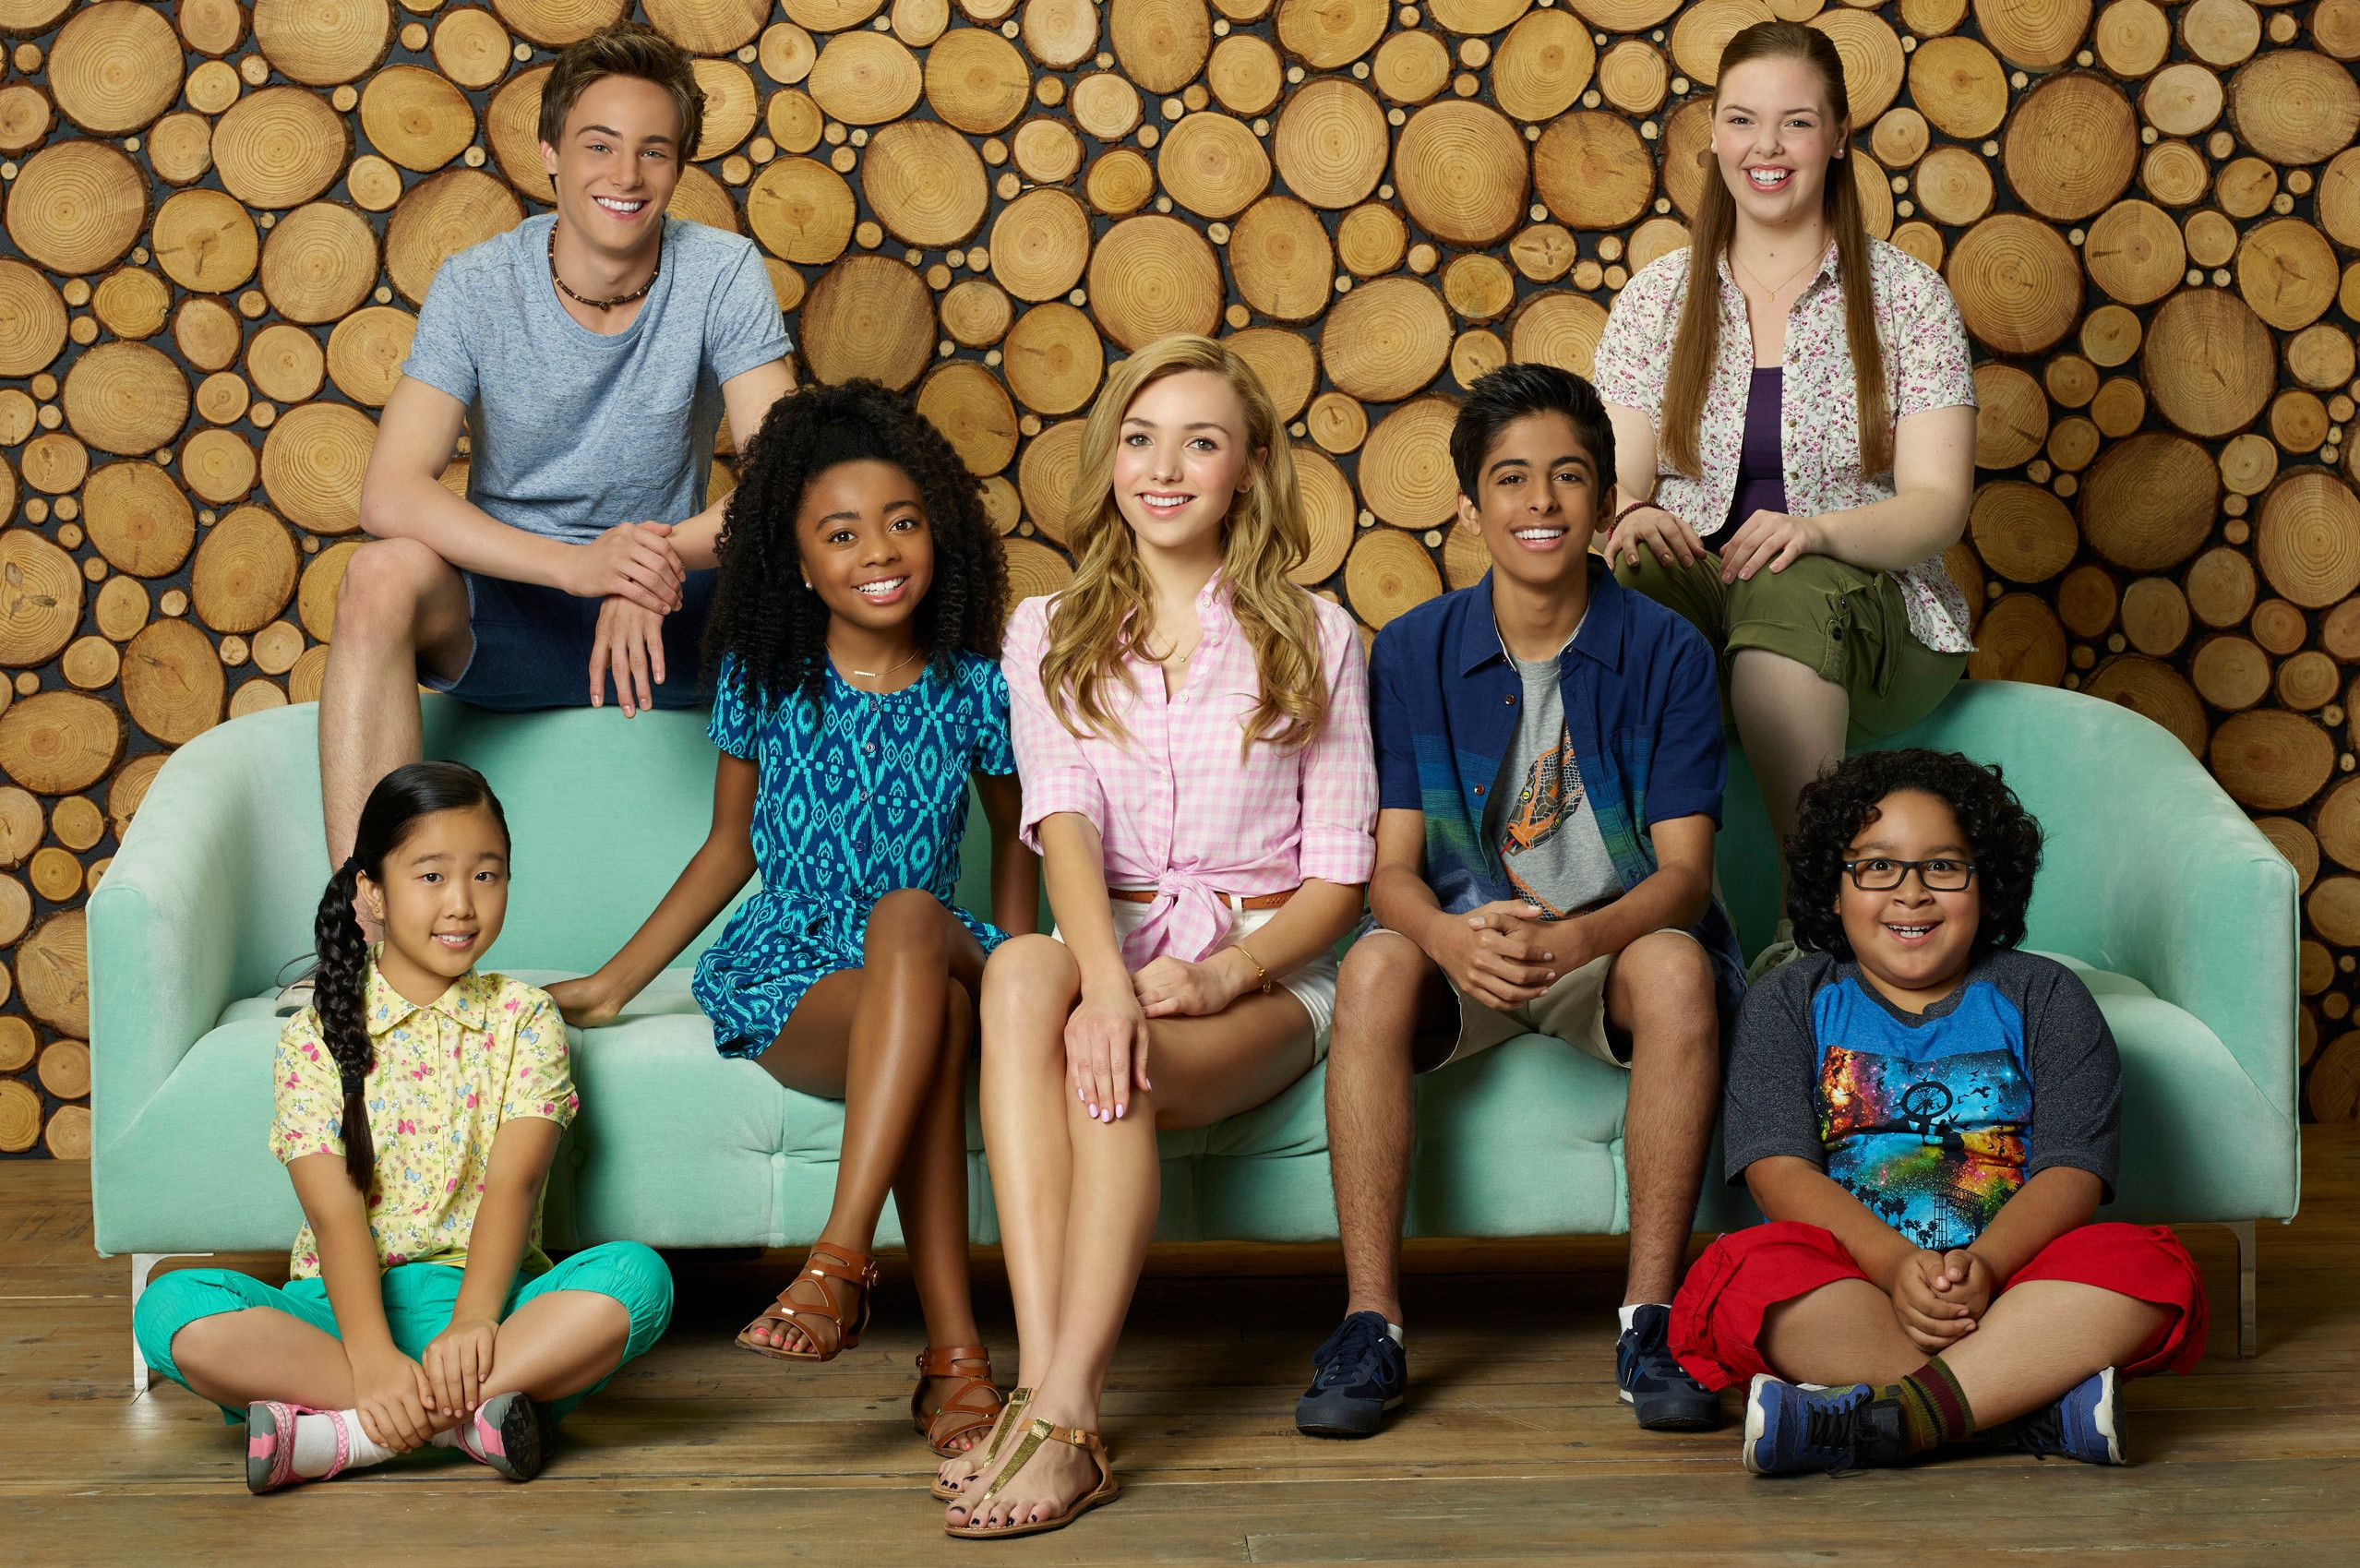 Disney Channel S Bunk D Will End After Season 3 In 2020 Disney Channel Best Friends Whenever Disney Channel Shows